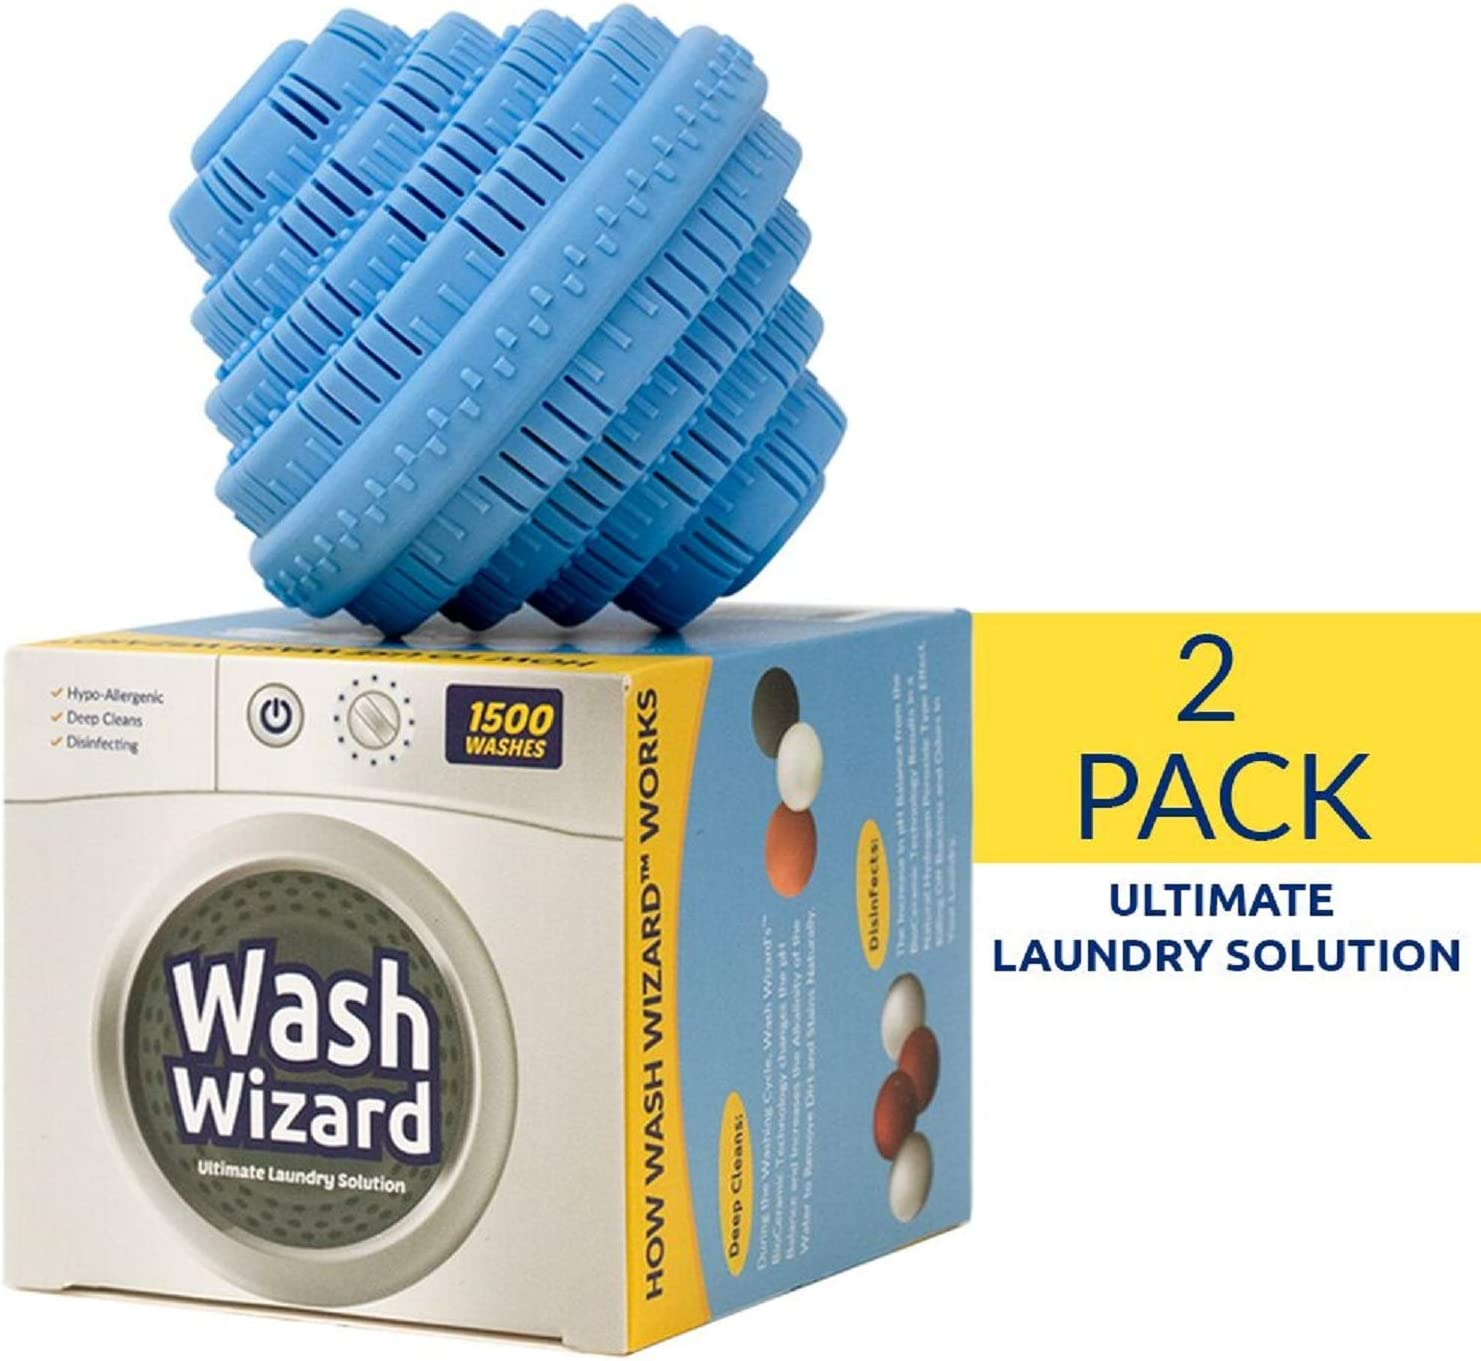 Wash Wizard - Laundry Ball (2-Pack) - Top Rated Washer Ball - Reusable - Detergent Alternative & Replacement